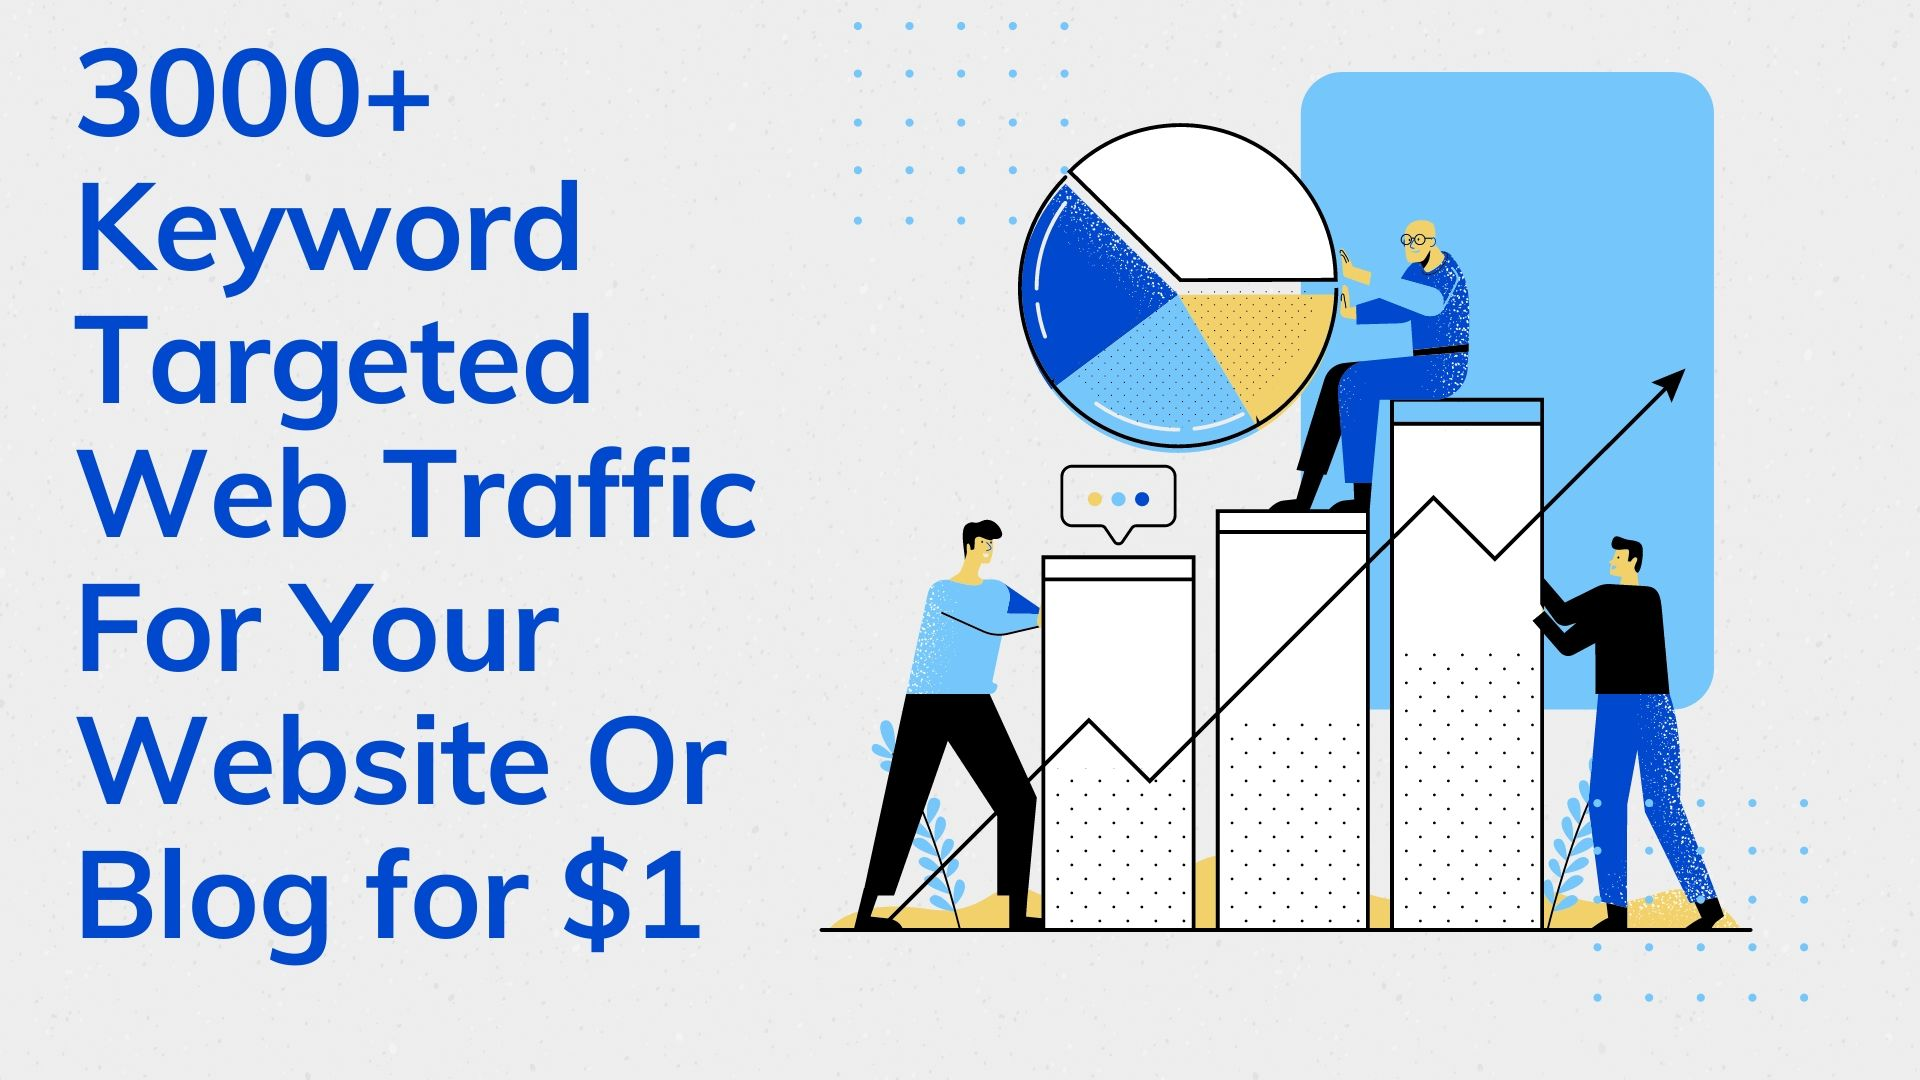 3000+ Keyword Targeted Web Traffic For Your Website Or Blog